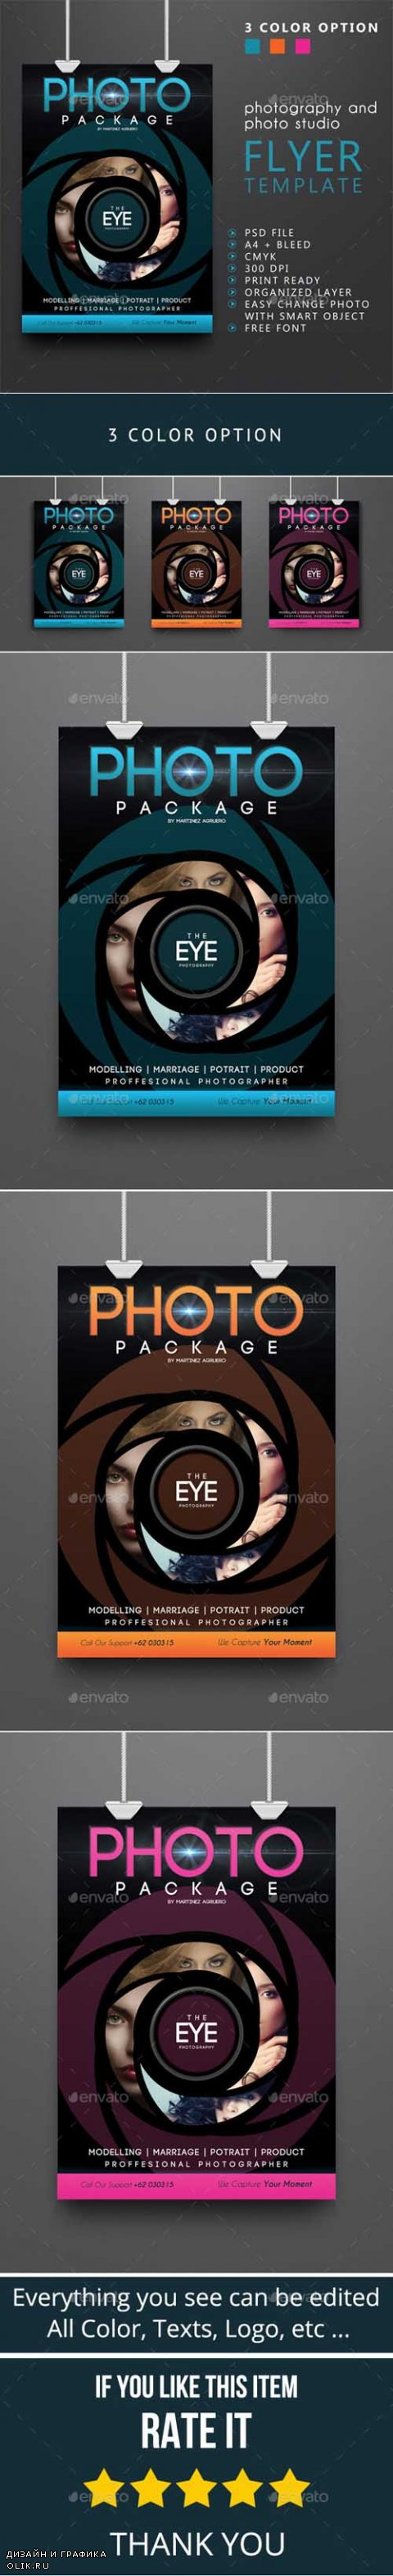 Photography Flyer Template 9345990